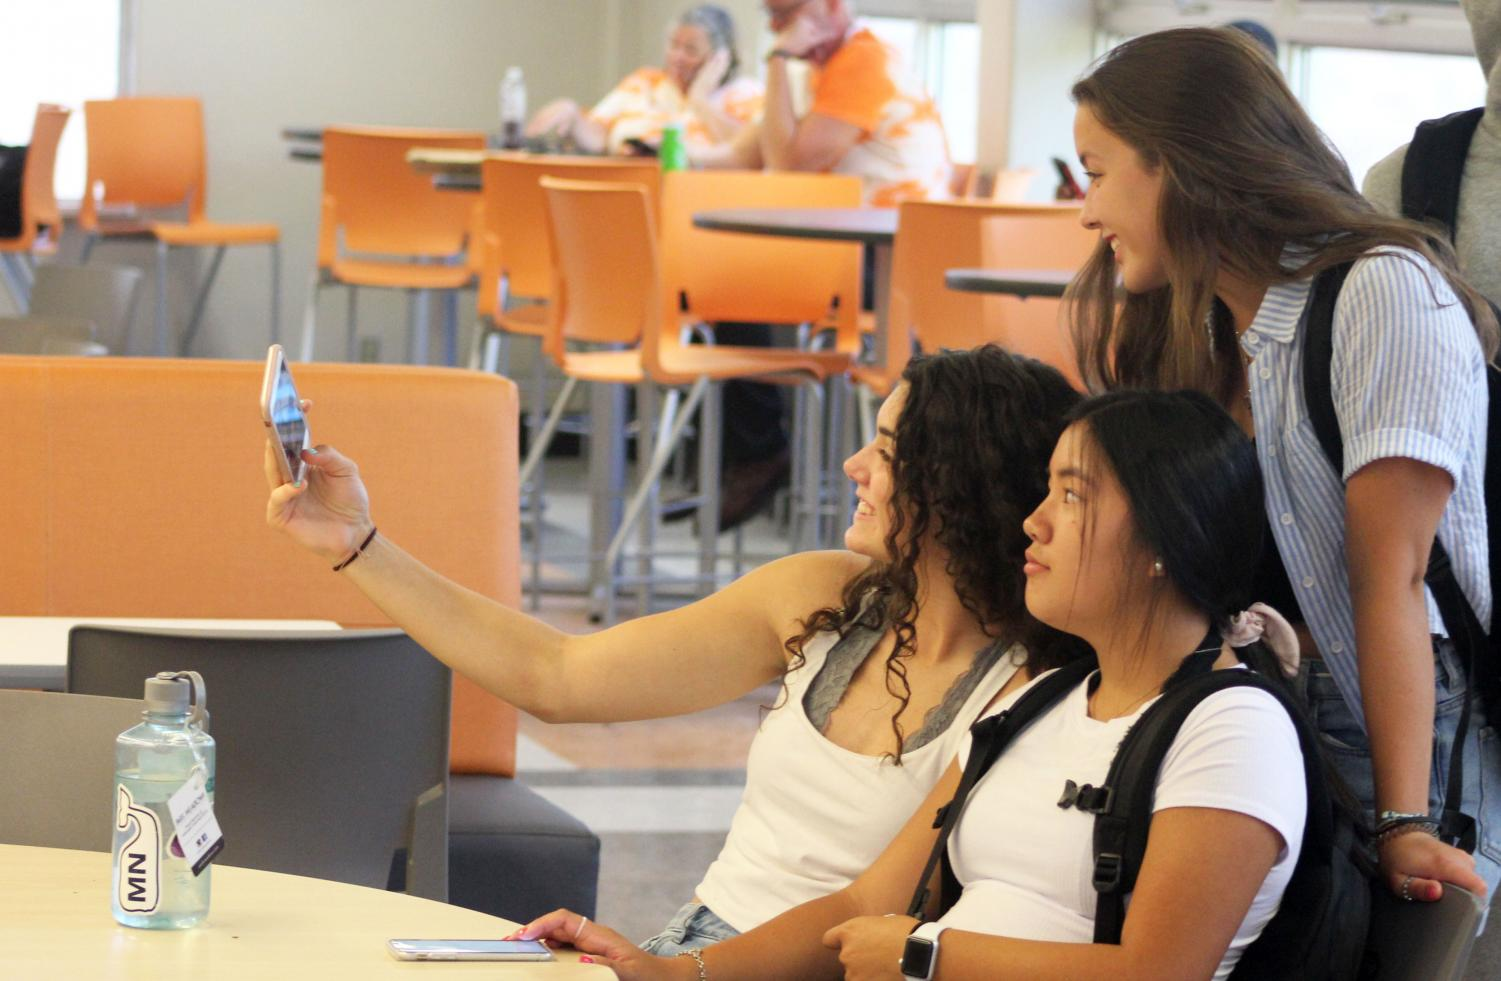 Juniors+Marissa+Boettcher%2C+Hannah+Howell+and+Selee+Olmen+take+a+selfie+during+lunch.+First+day+activities+allowed+students+to+reconnect+with+each+other+after+summer+break.